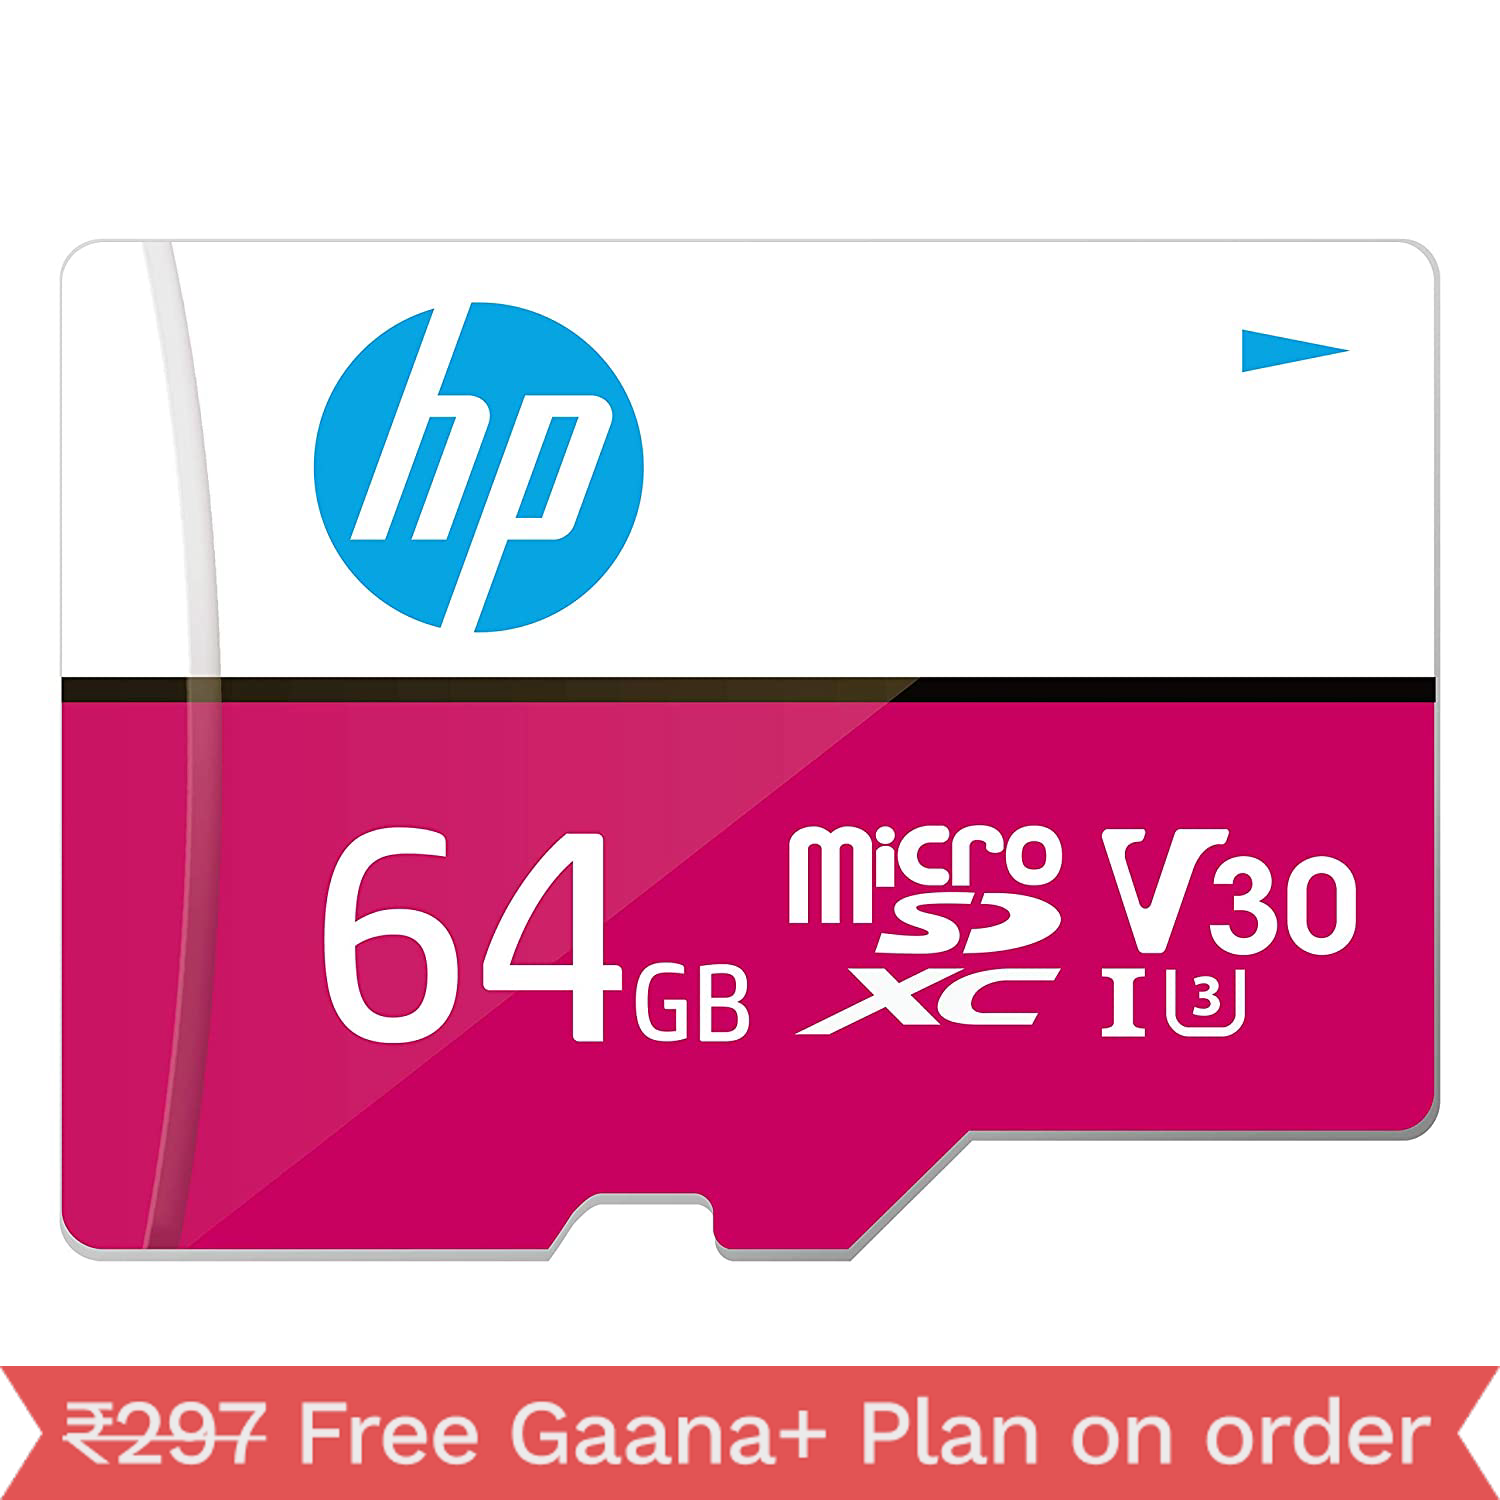 HP Micro SD Card 64GB with Adapter U3 V30 (Pink) (Write Speed 85MB/s & Read Speed 100 MB/s Records 4K UHD and Fill HD Video)